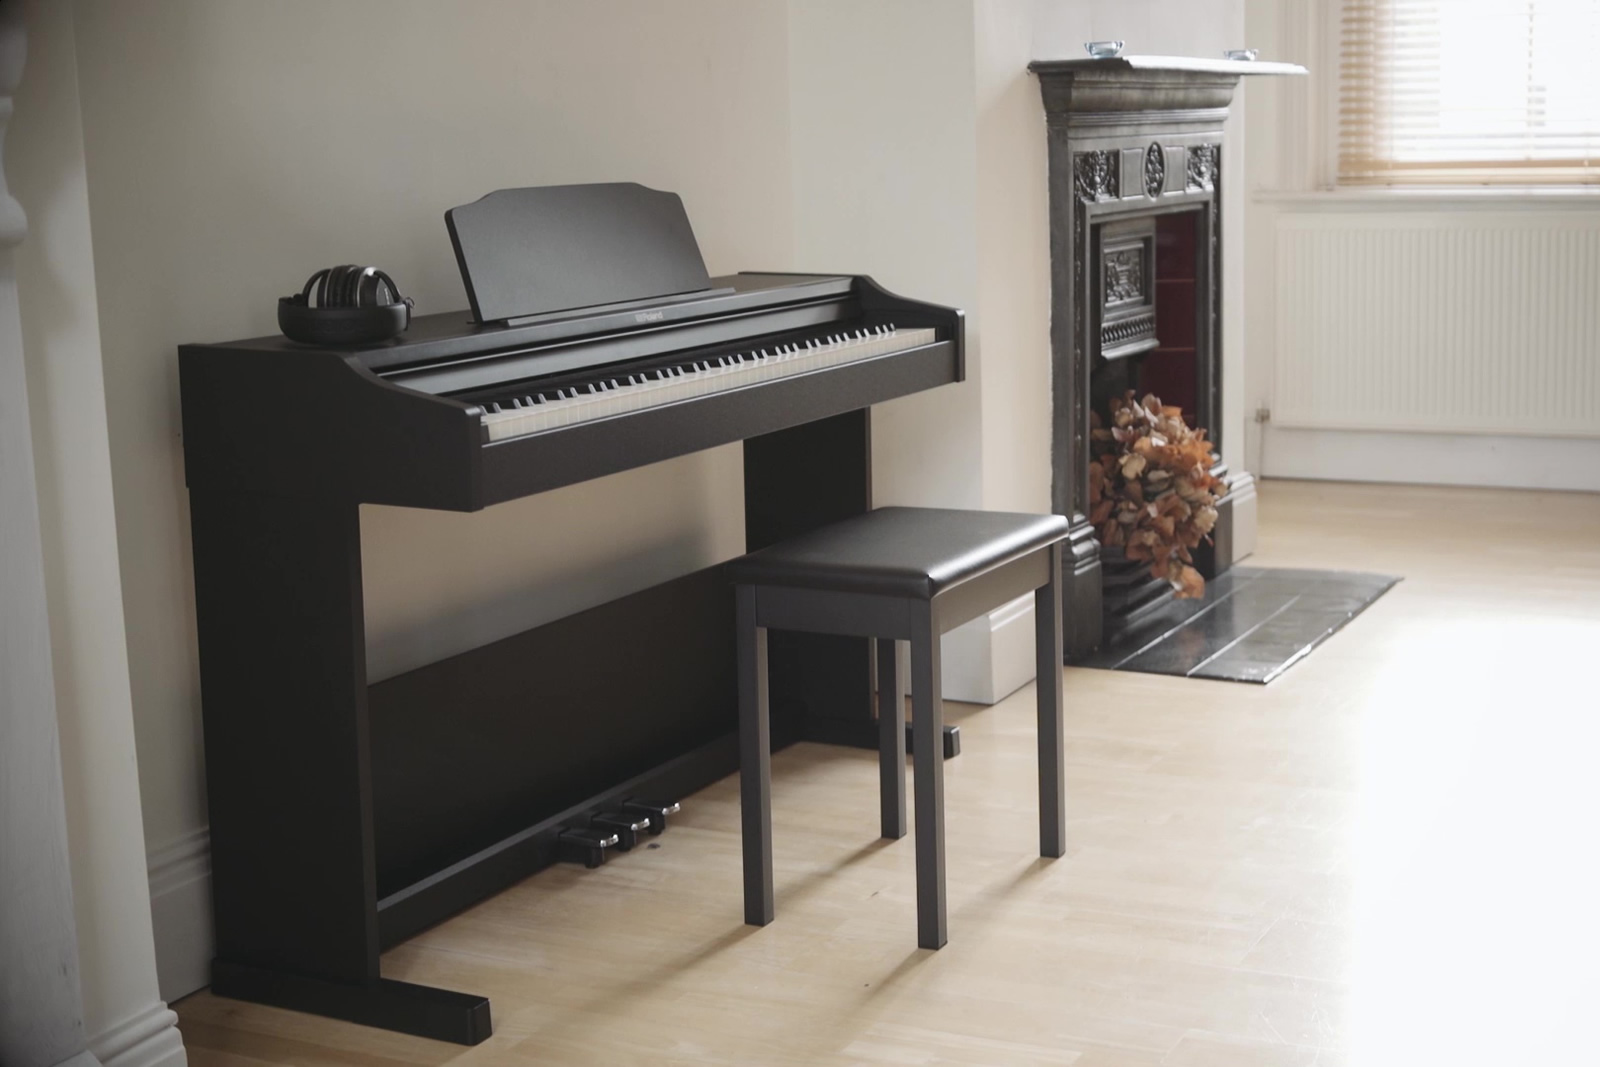 Top 10 Best Buy Digital Piano Melbourne Comparison